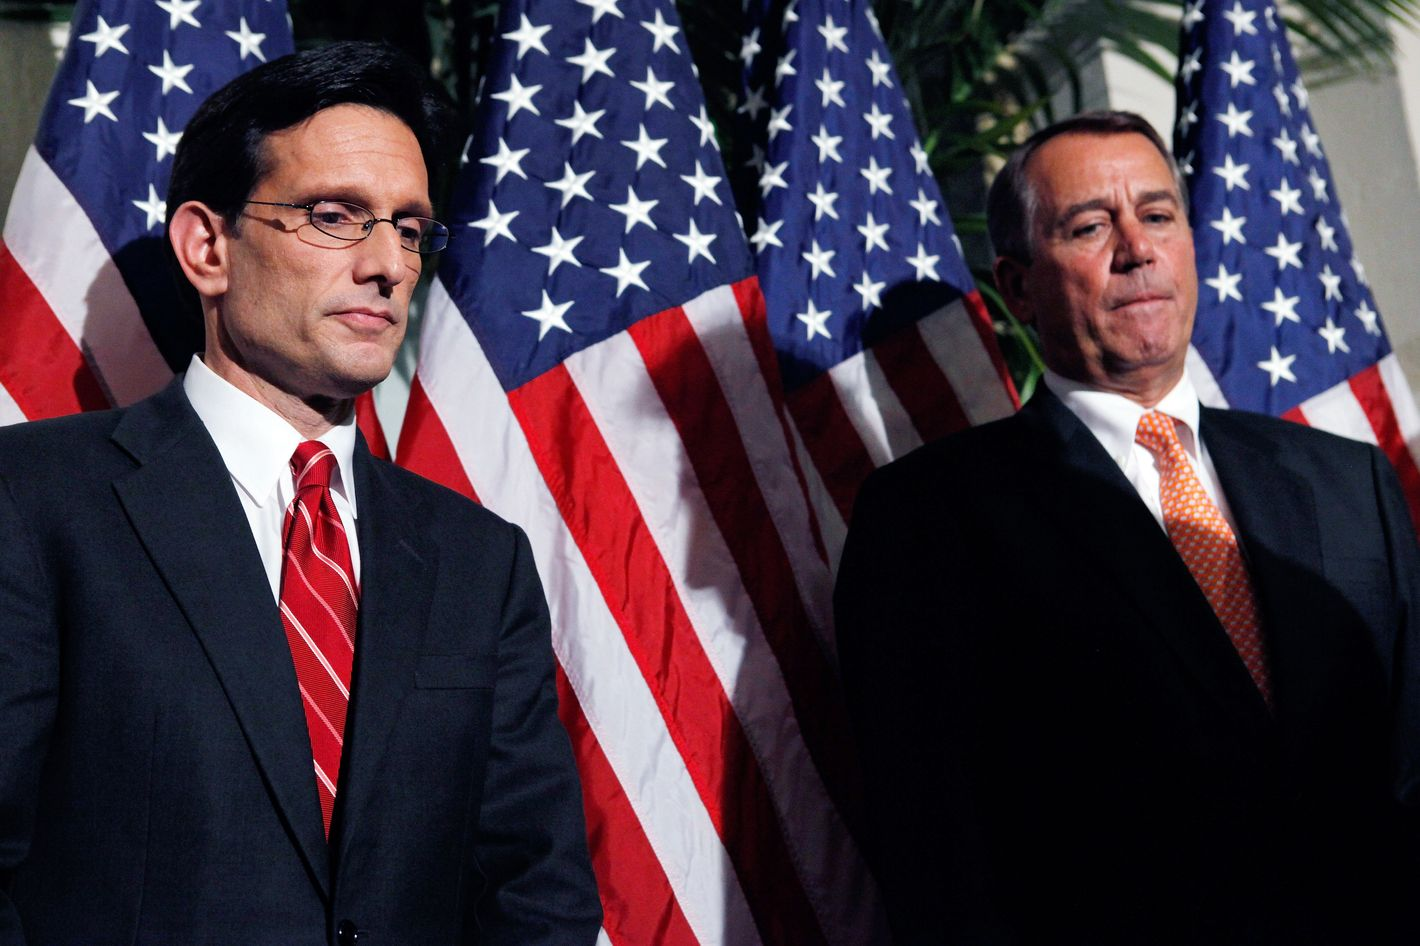 Speaker of the House John Boehner (R-OH) (R) and Majority Leader Eric Cantor (R-VA) hold a brief news conference on December 19, 2011 in Washington, DC.